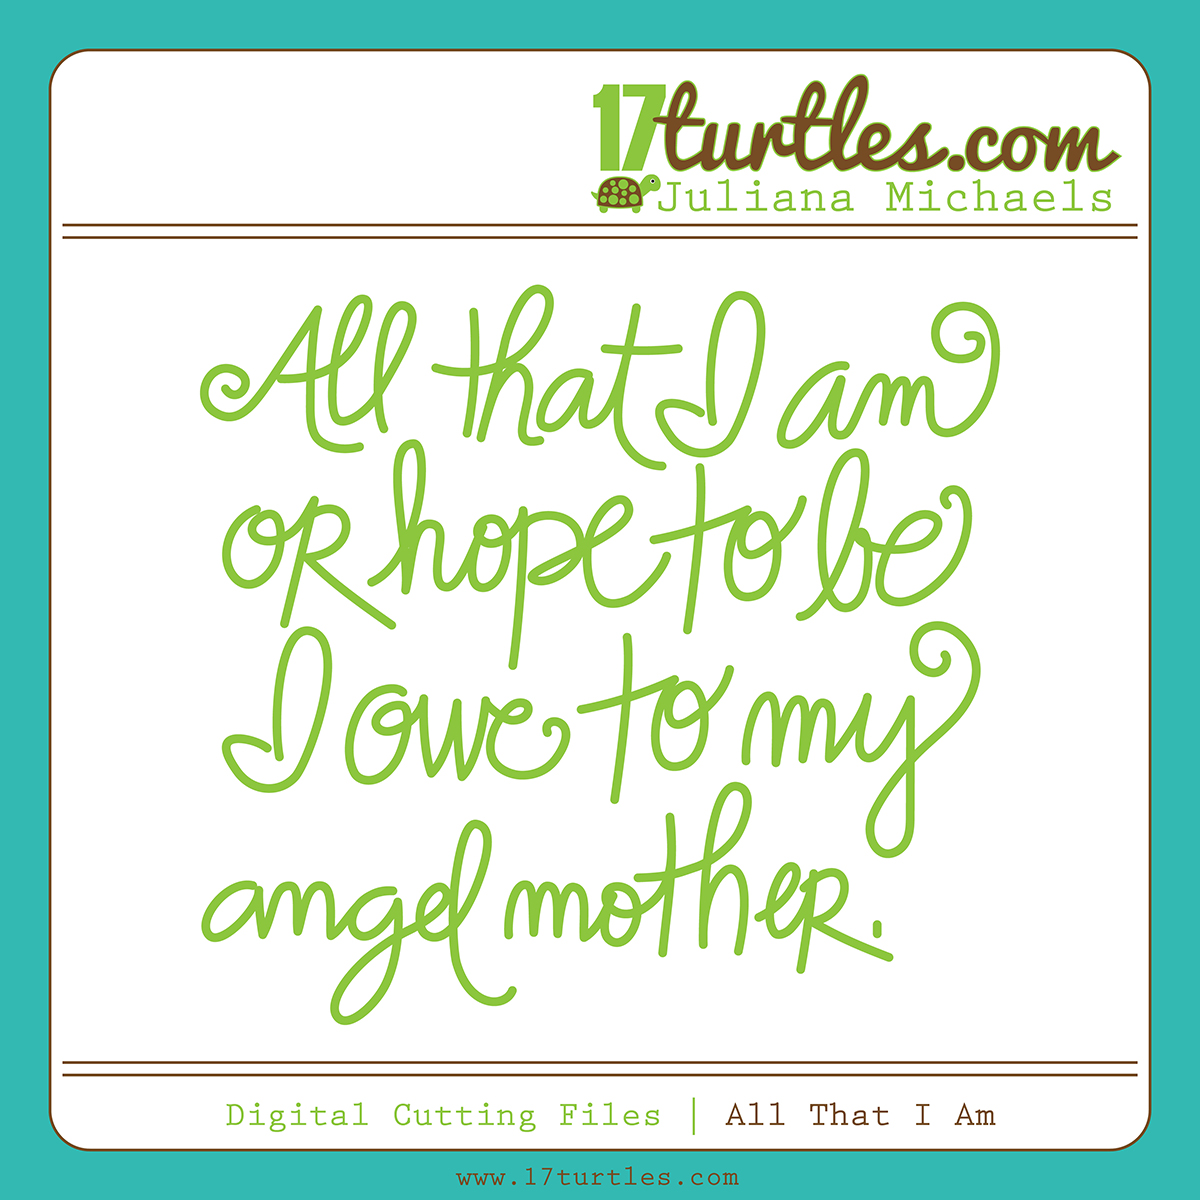 All That I Am Free Digital Cutting File by Juliana Michaels 17turtles.com